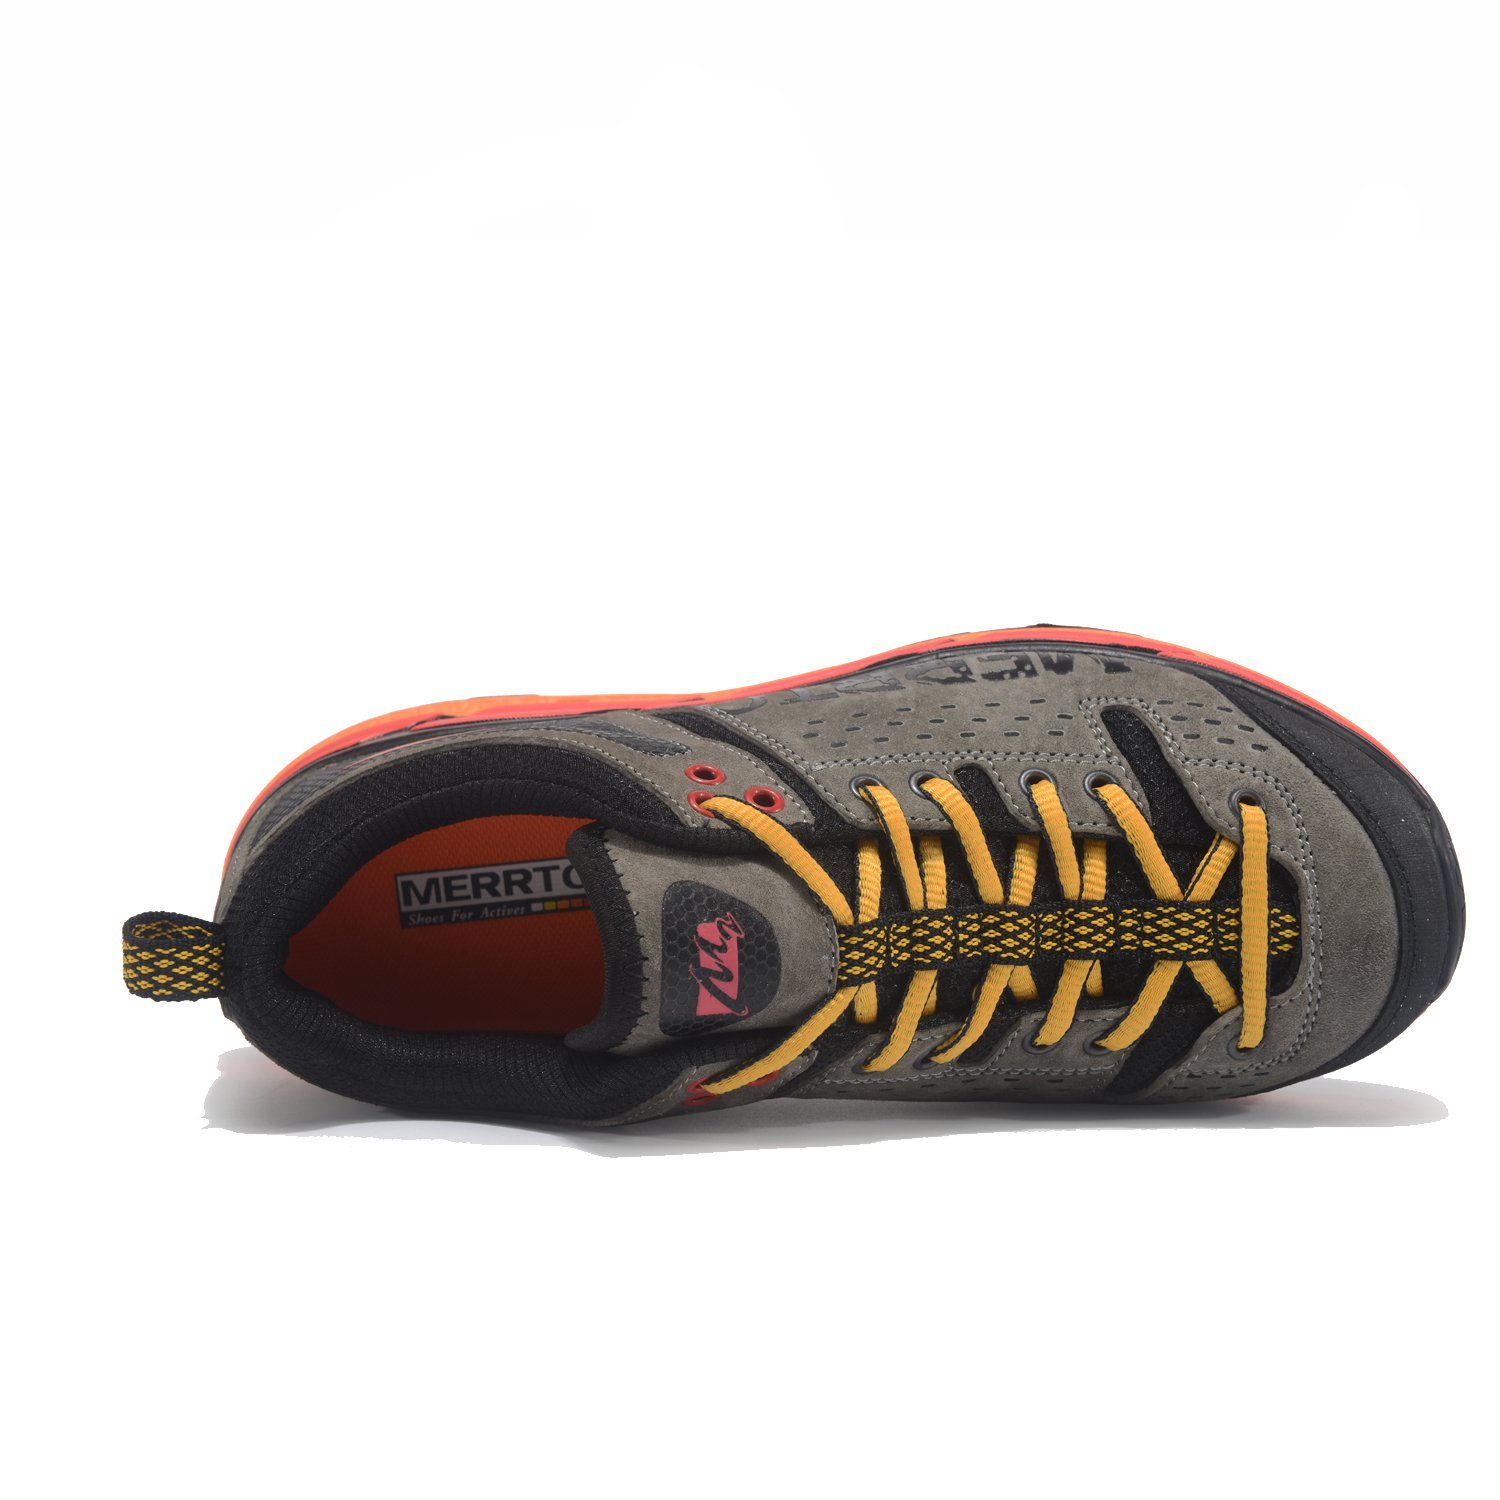 Qianling Collection Mens Outdoor Runners Trail Textile Sude Leather Trekking Running Shoe